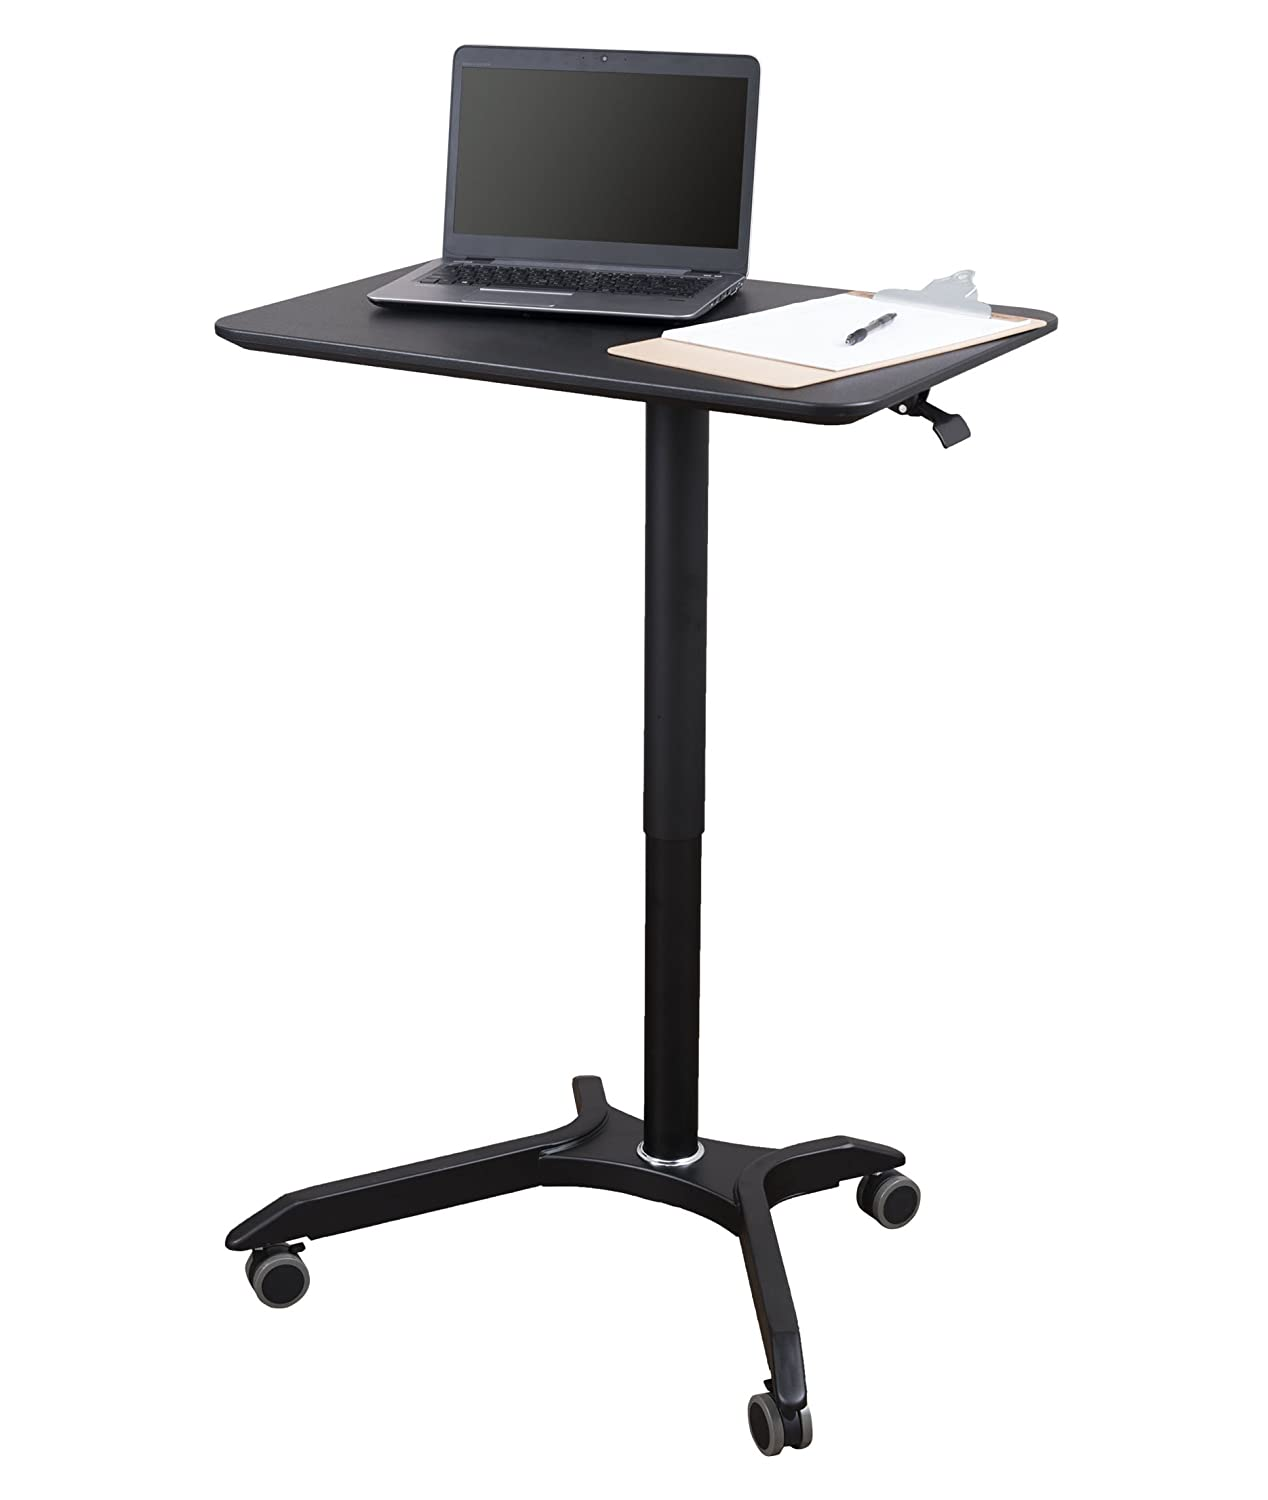 Pneumatic Adjustable Height Laptop Desk Cart 28 , Black Black